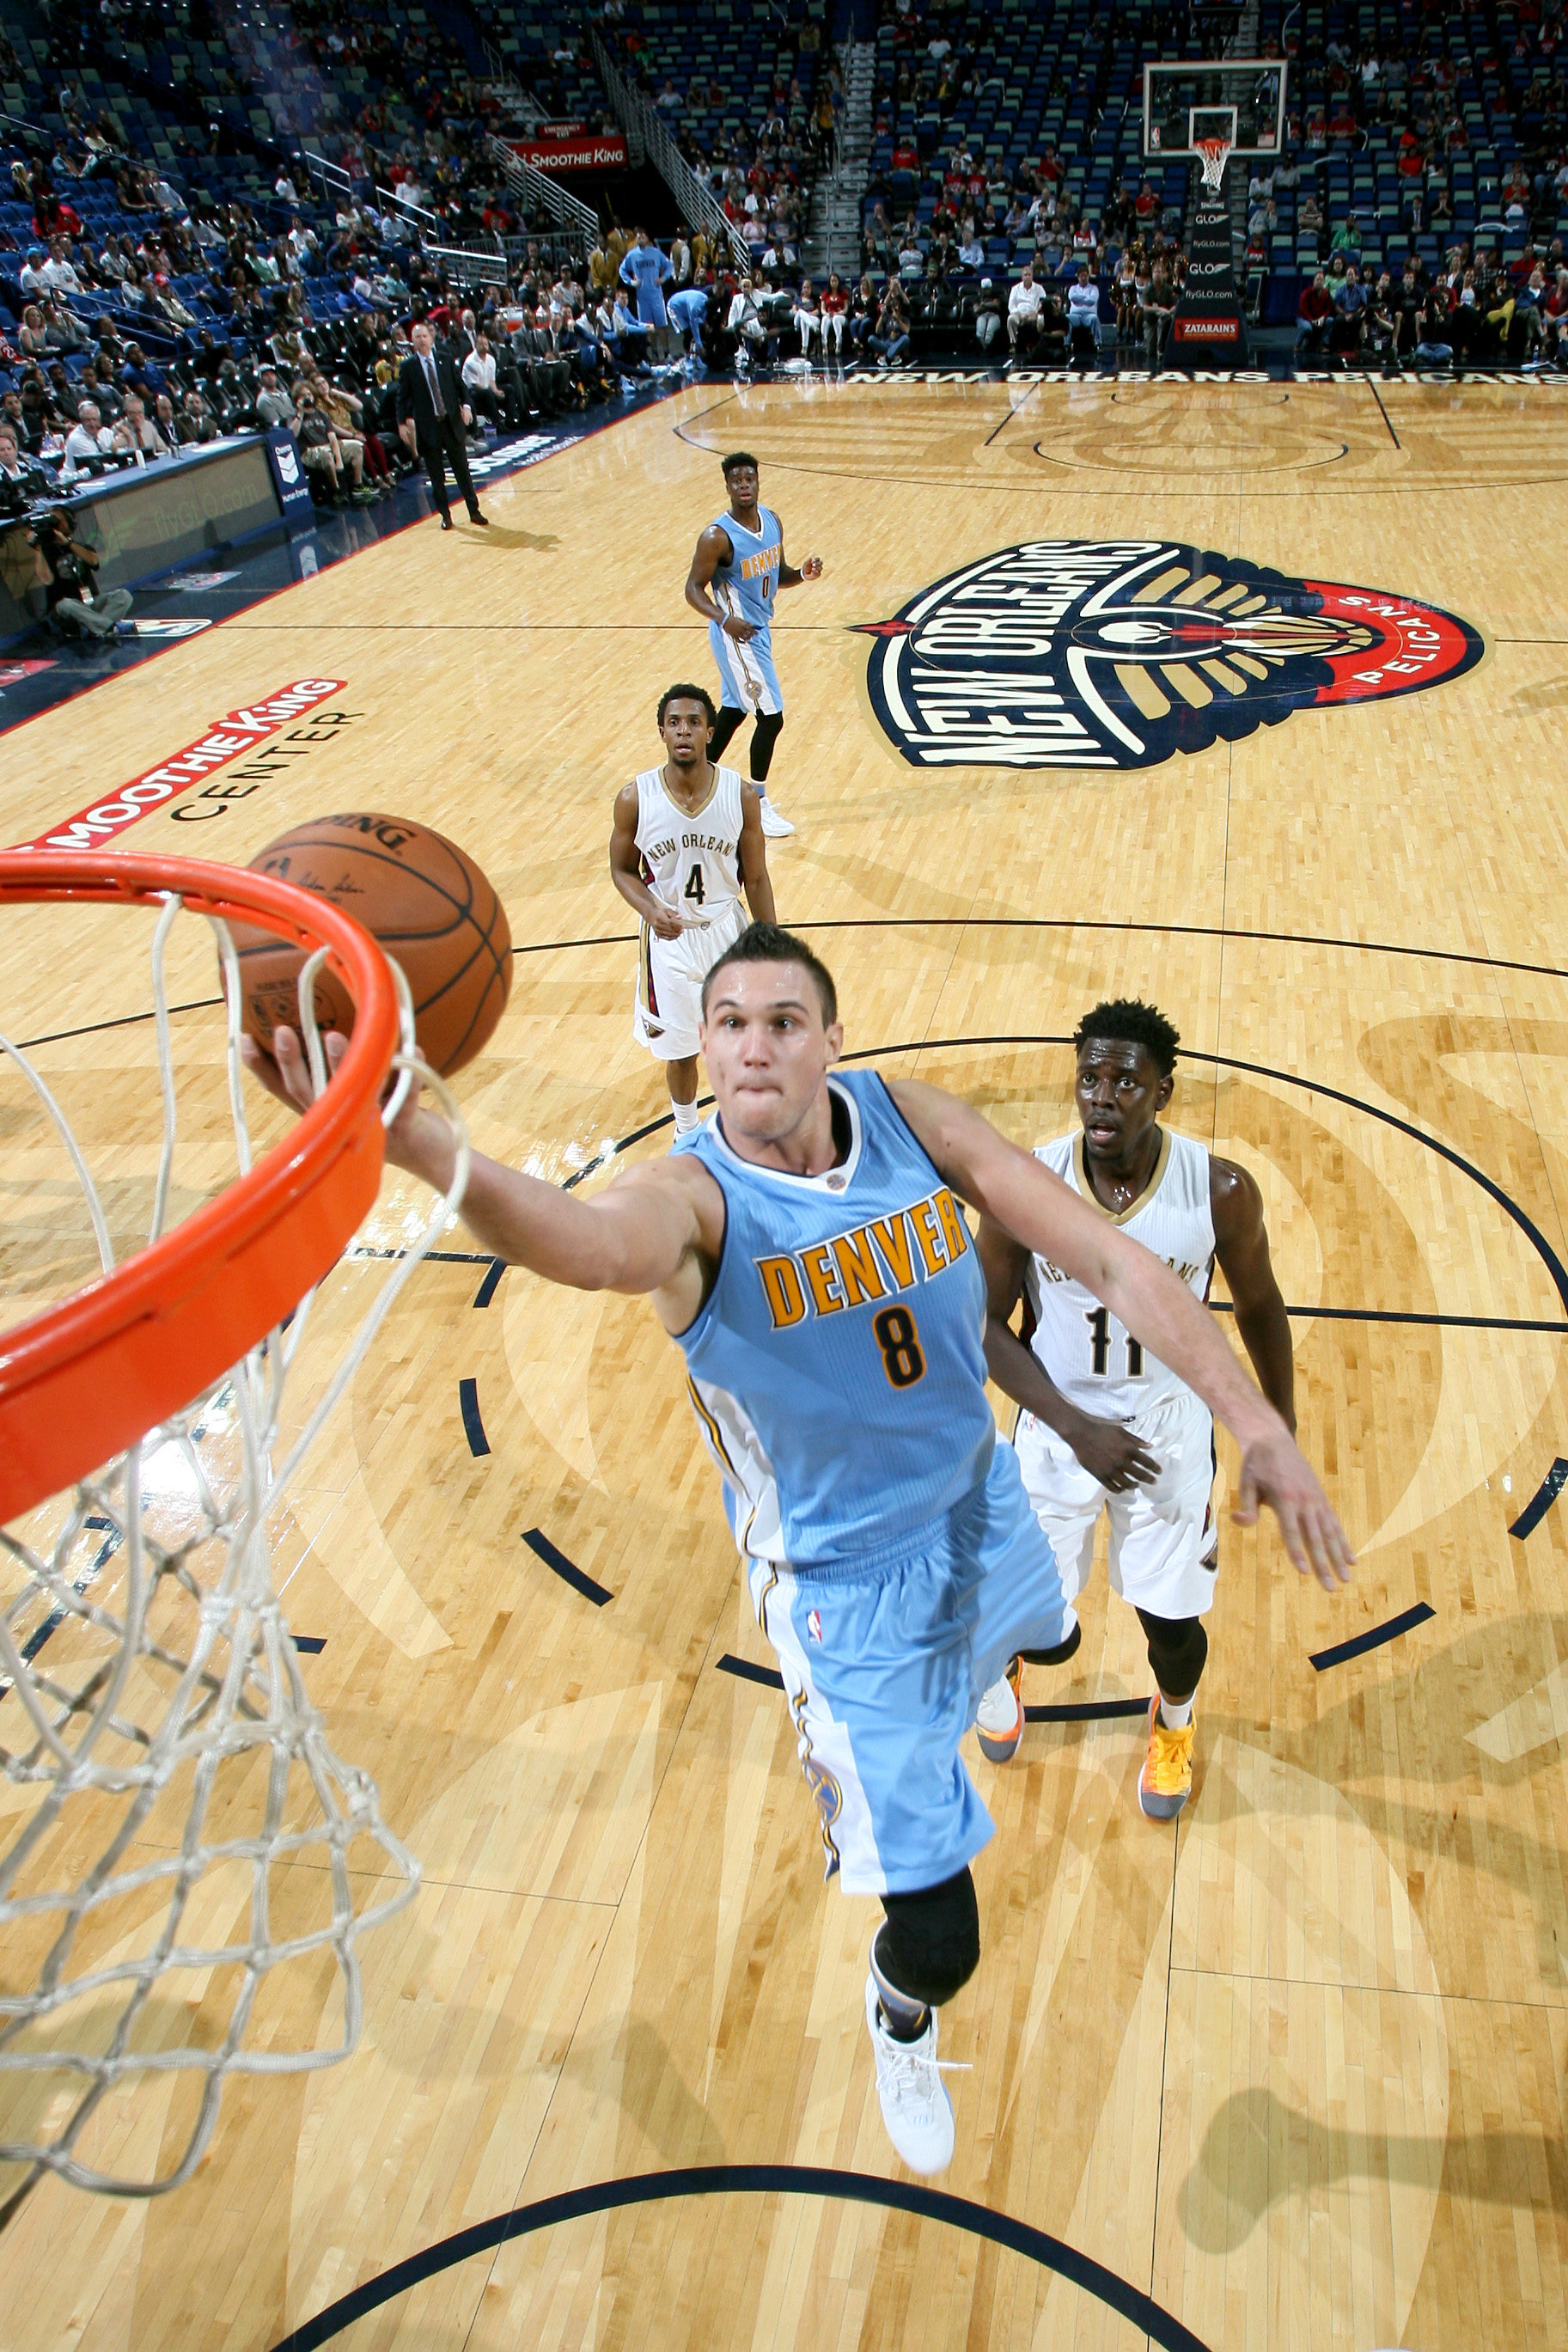 NEW ORLEANS, LA - NOVEMBER 17: Danilo Gallinari #8 of the Denver Nuggets shoots the ball during the game on November 17, 2015 at the Smoothie King Center in New Orleans, Louisiana. (Photo by Layne Murdoch Jr./NBAE via Getty Images)